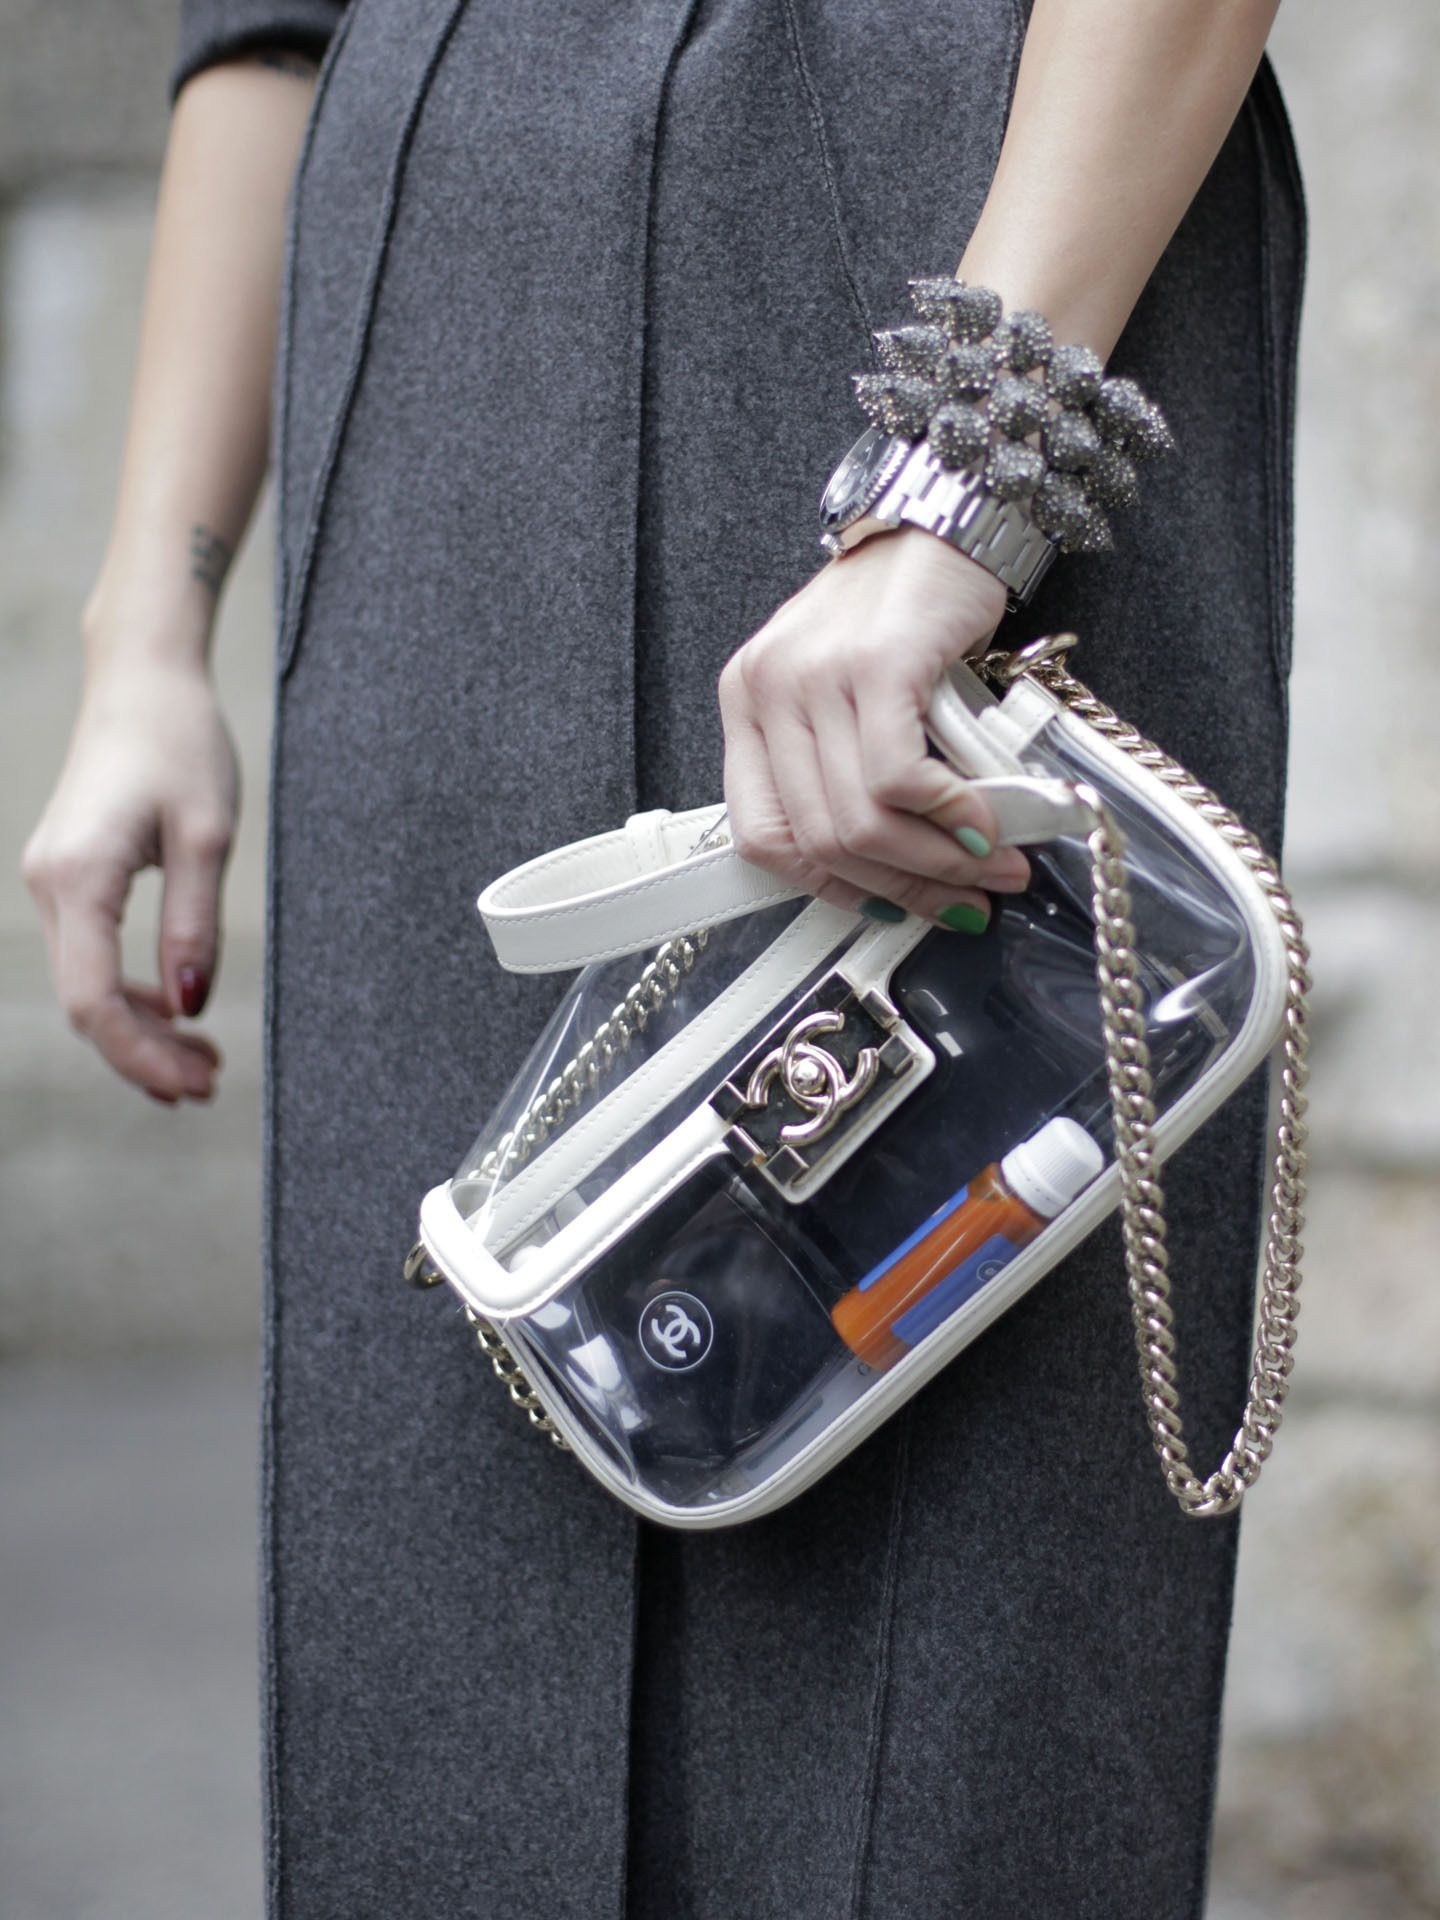 2b9dba0b69 transparent Clear Bags, Transparent Bag, Street Style, Hermes Kelly,  Passion For Fashion